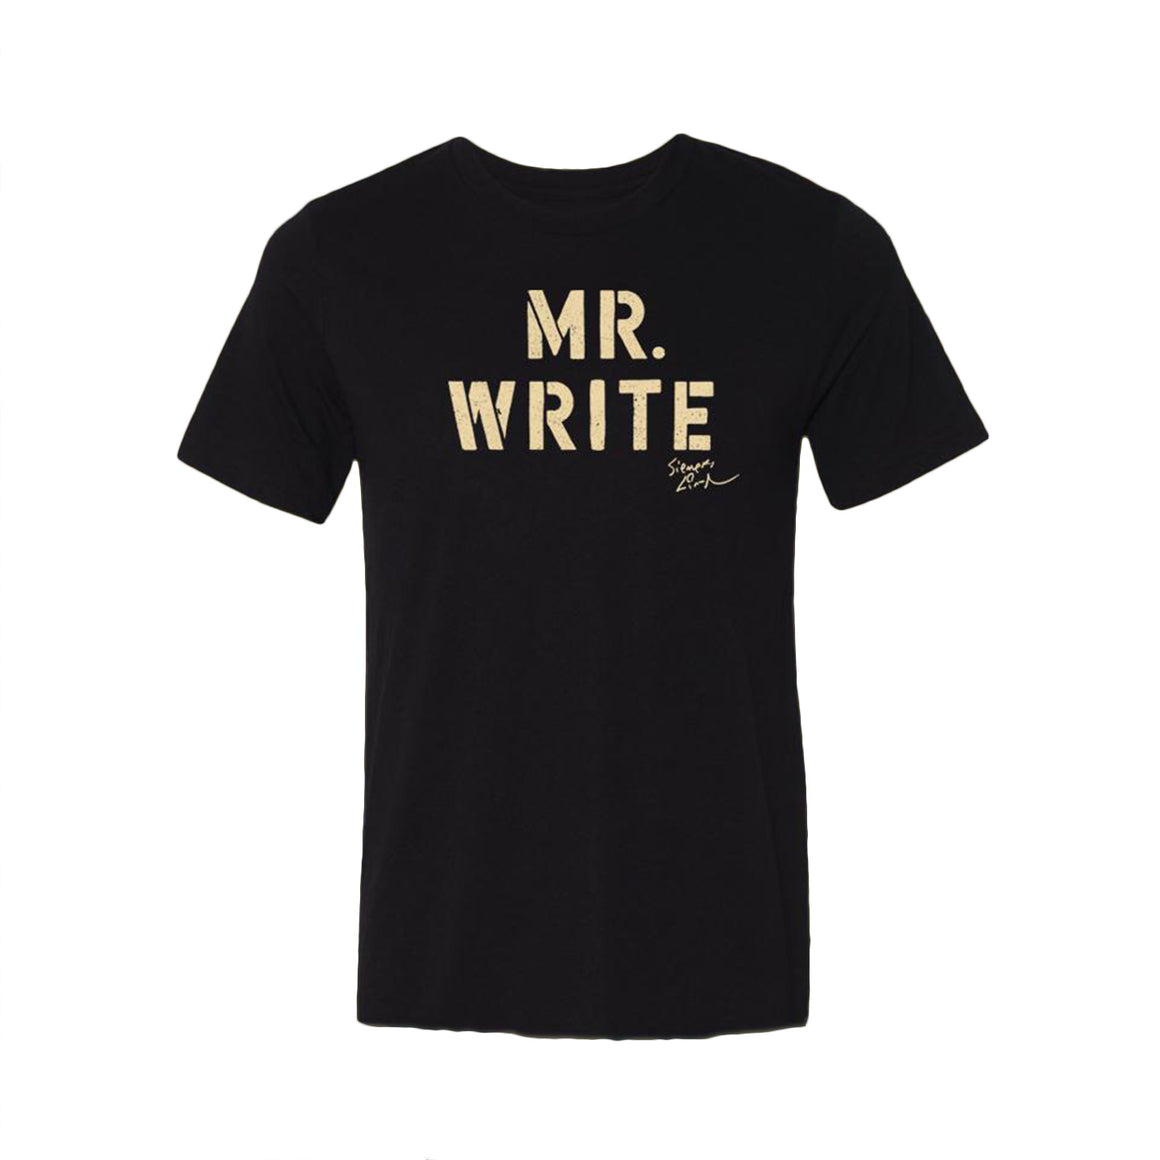 MR. WRITE - Men's Crew